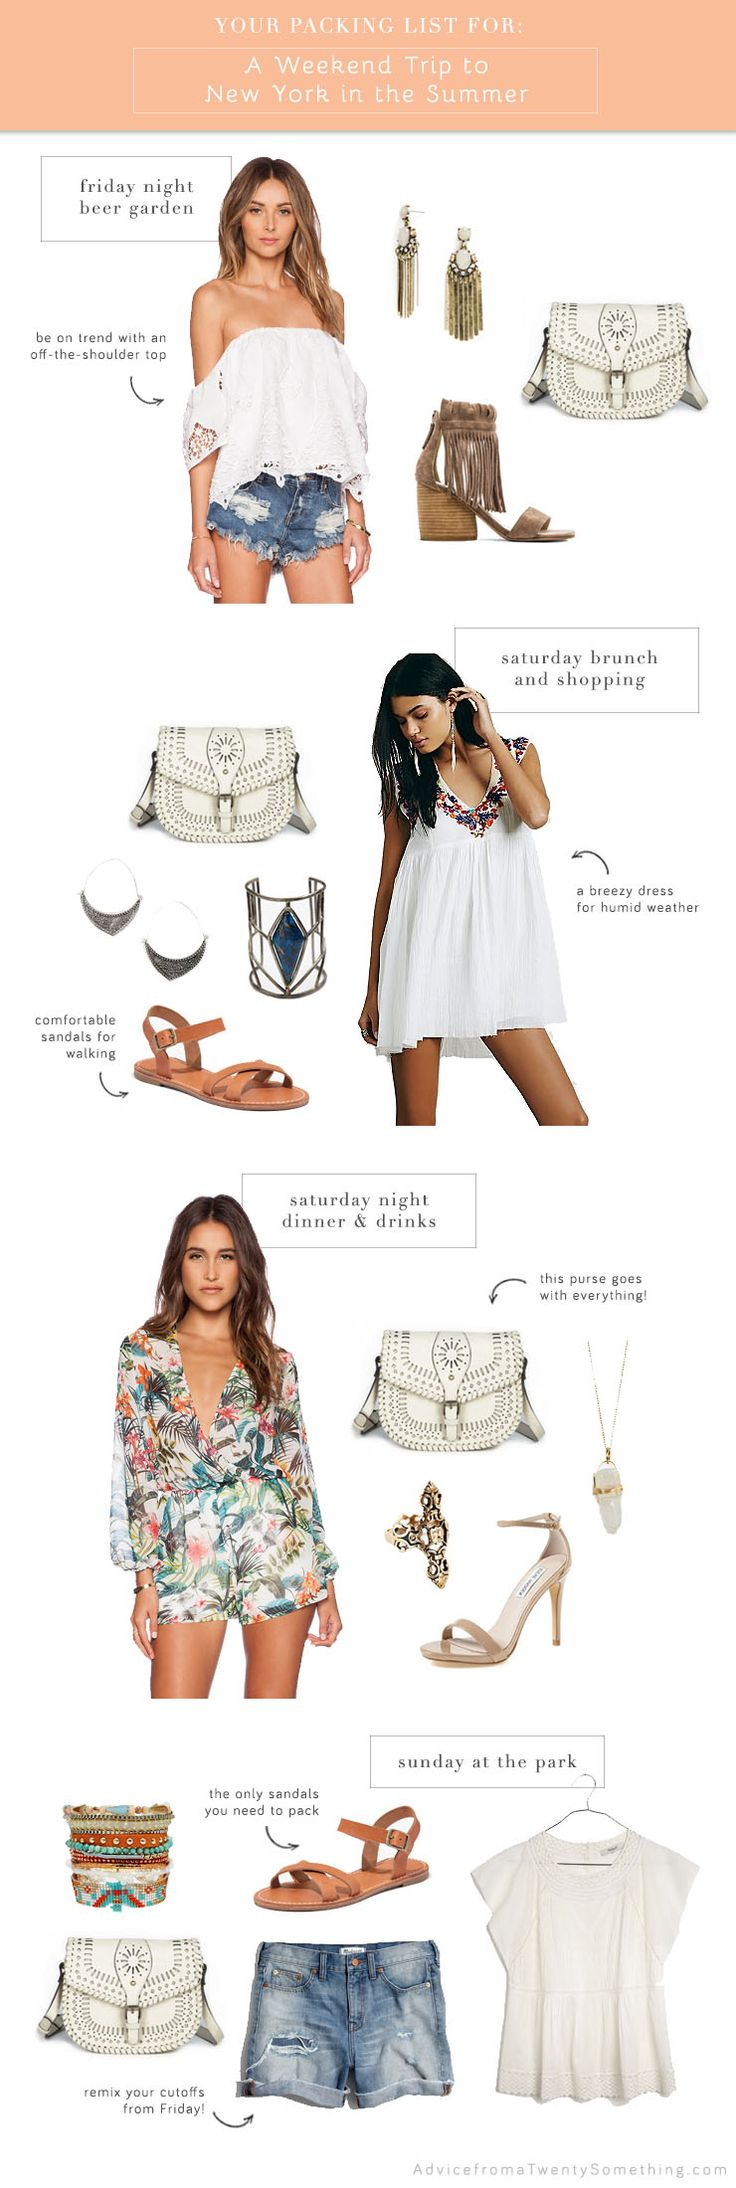 Ask Amanda: What to Pack for a Weekend in New York in the Summer, summer outfits, vacation outfit ideas